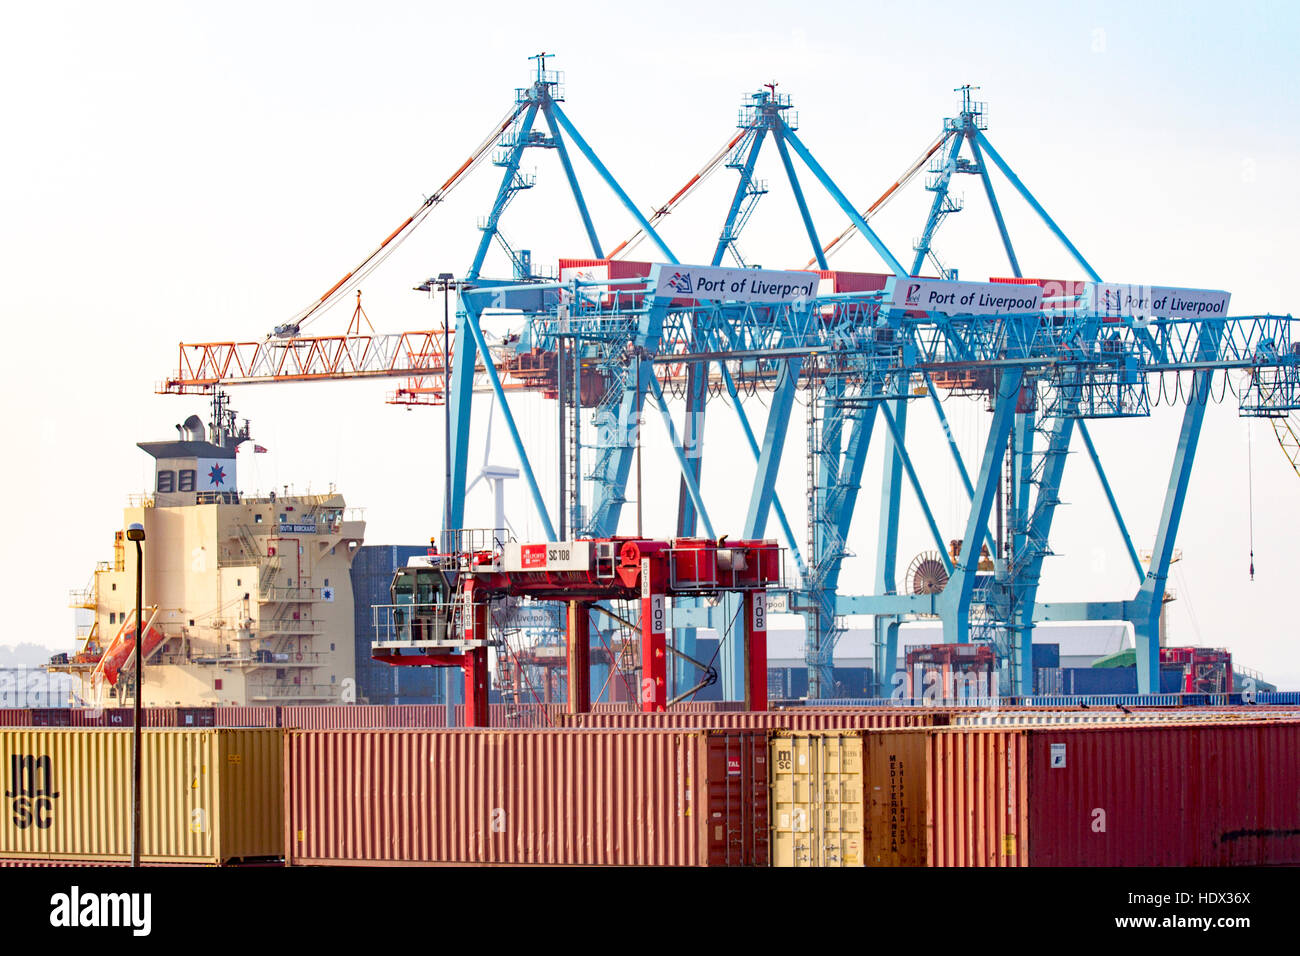 Containers & stanchion cranes at Liverpool Freeport, Merseyside, UK - Stock Image